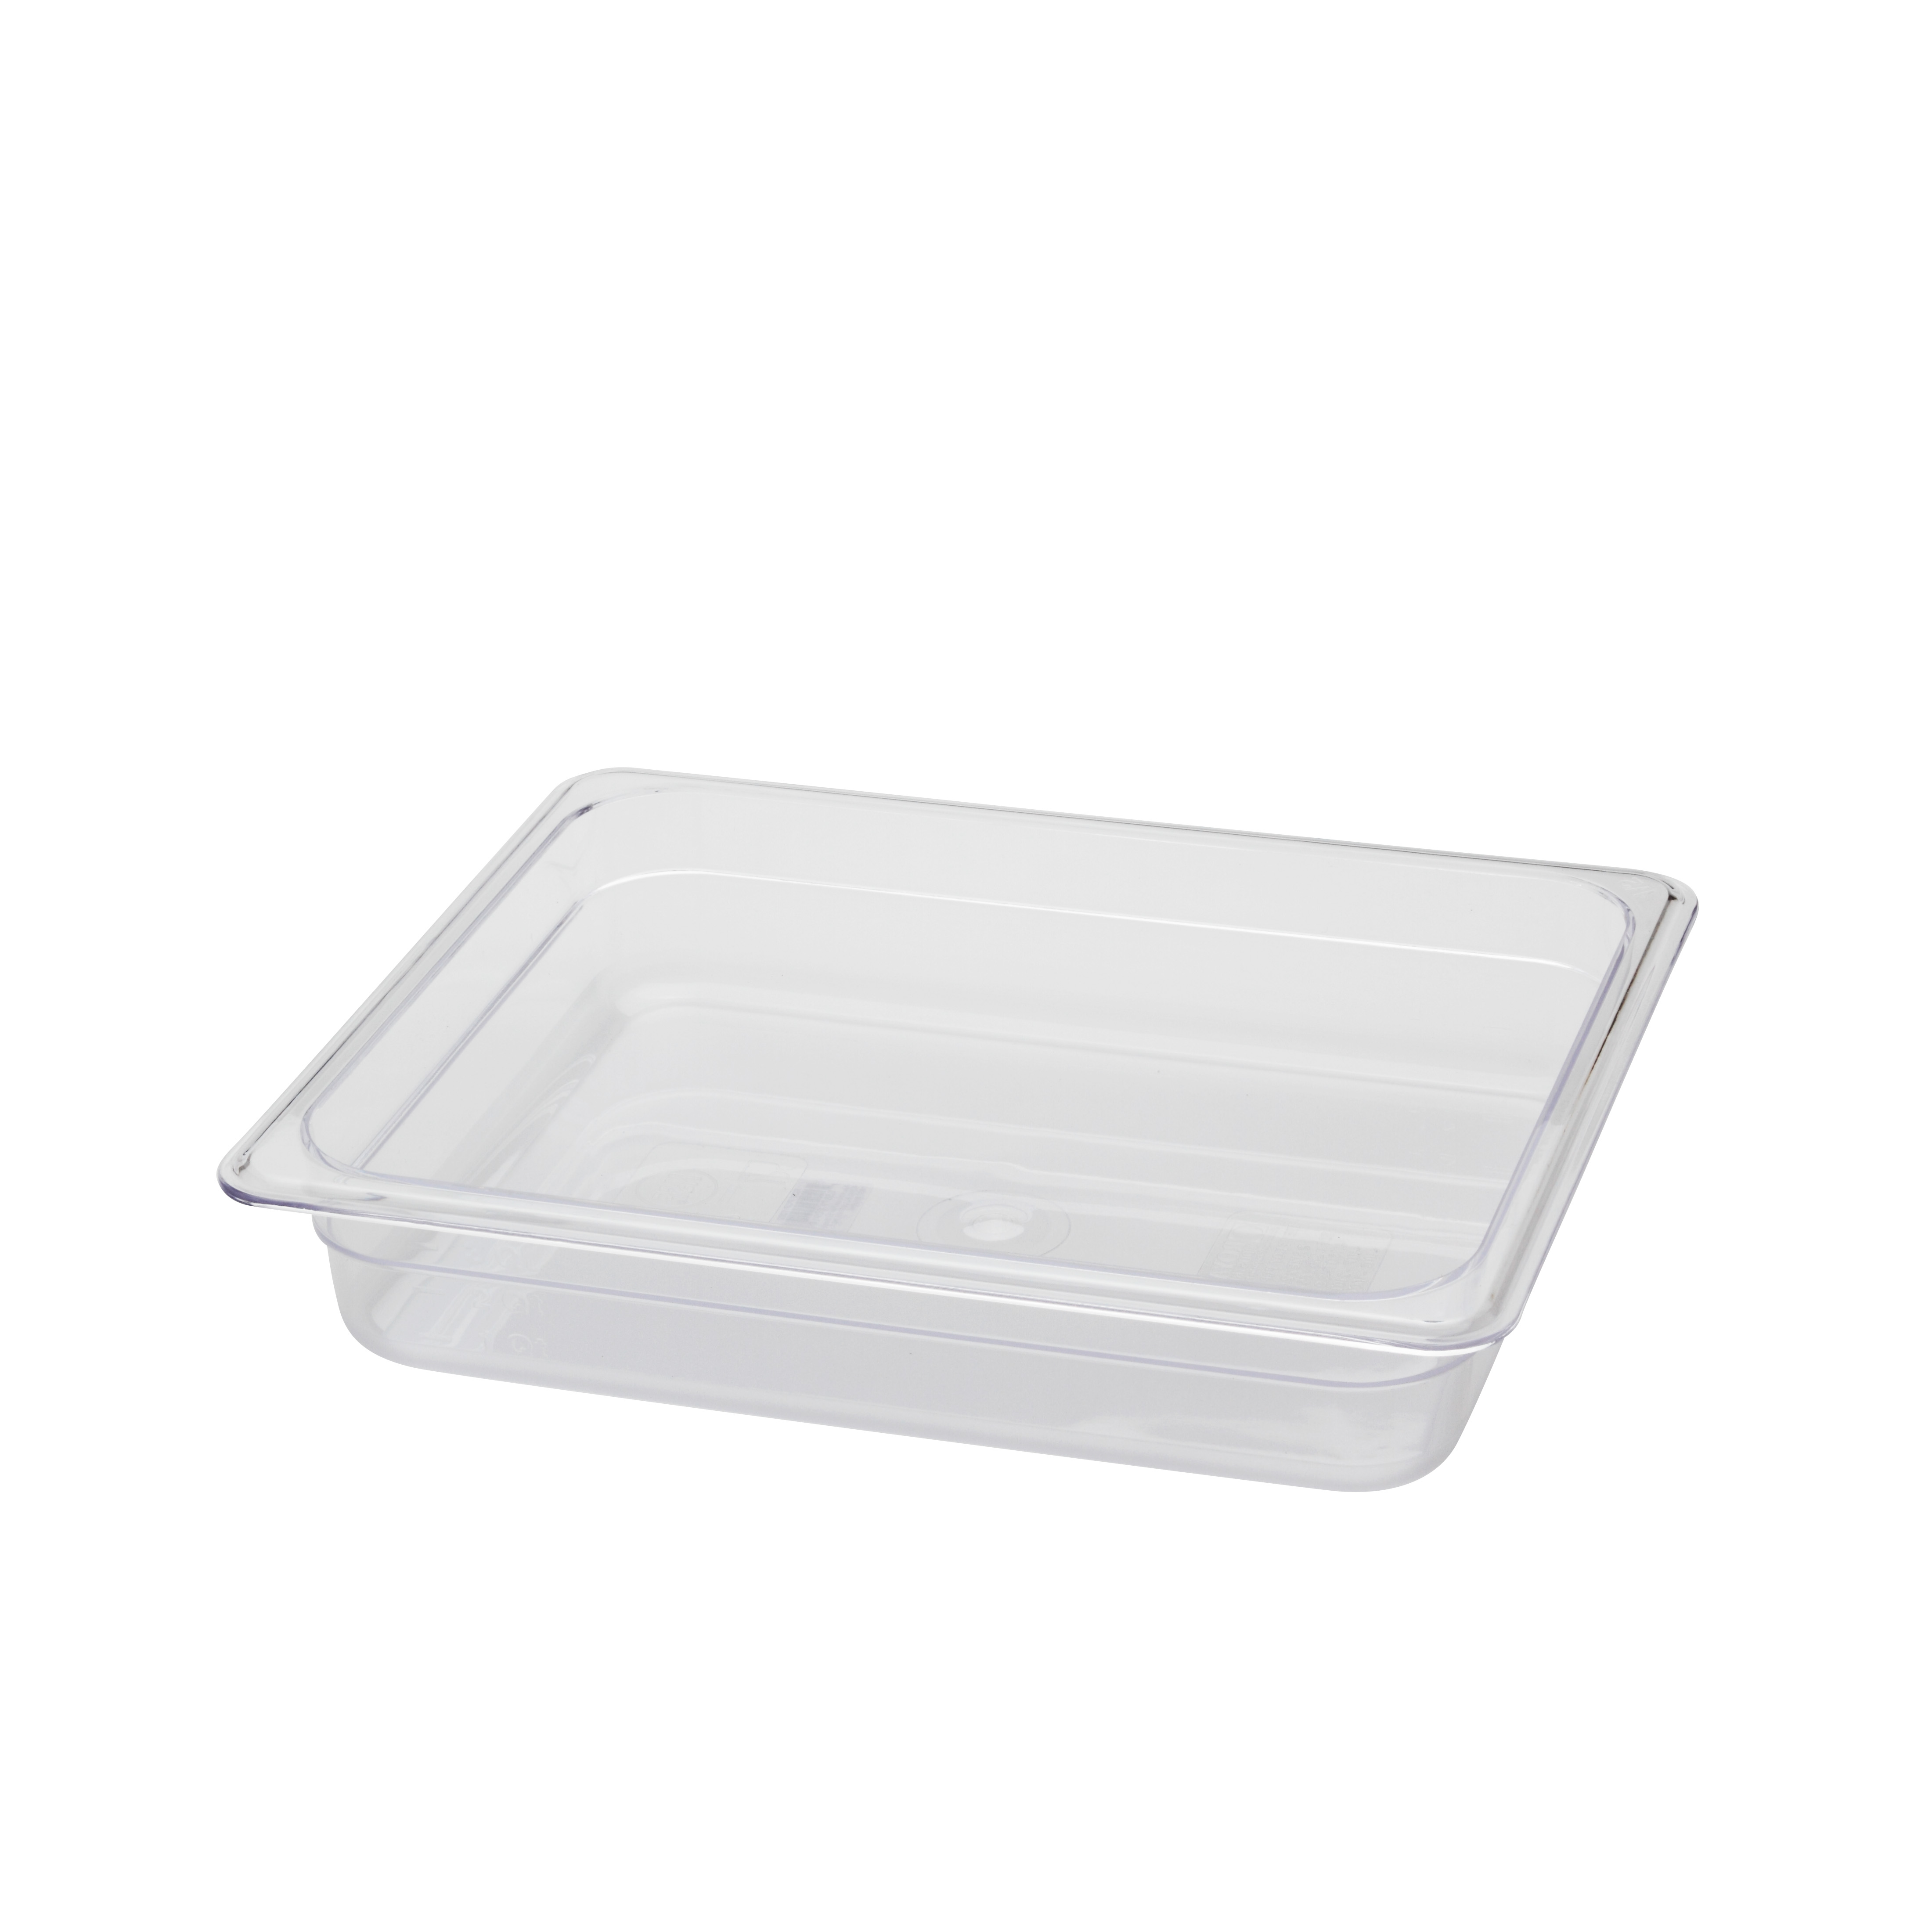 Royal Industries ROY PCP 1202 food pan, plastic